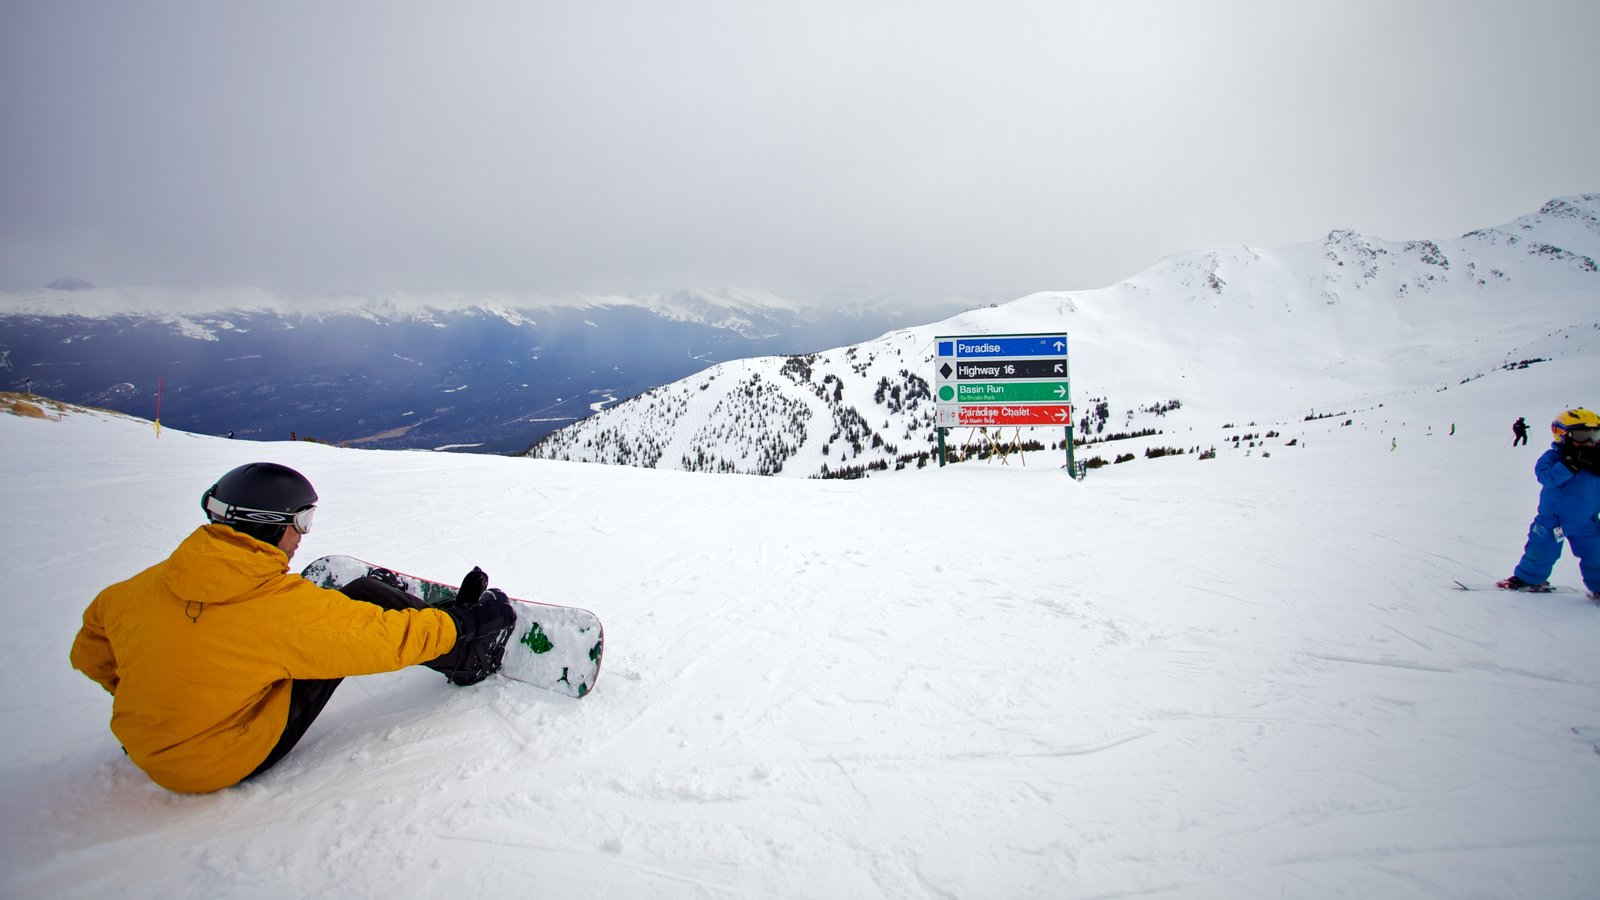 Marmot Basin which includes snow, landscape views and snowboarding